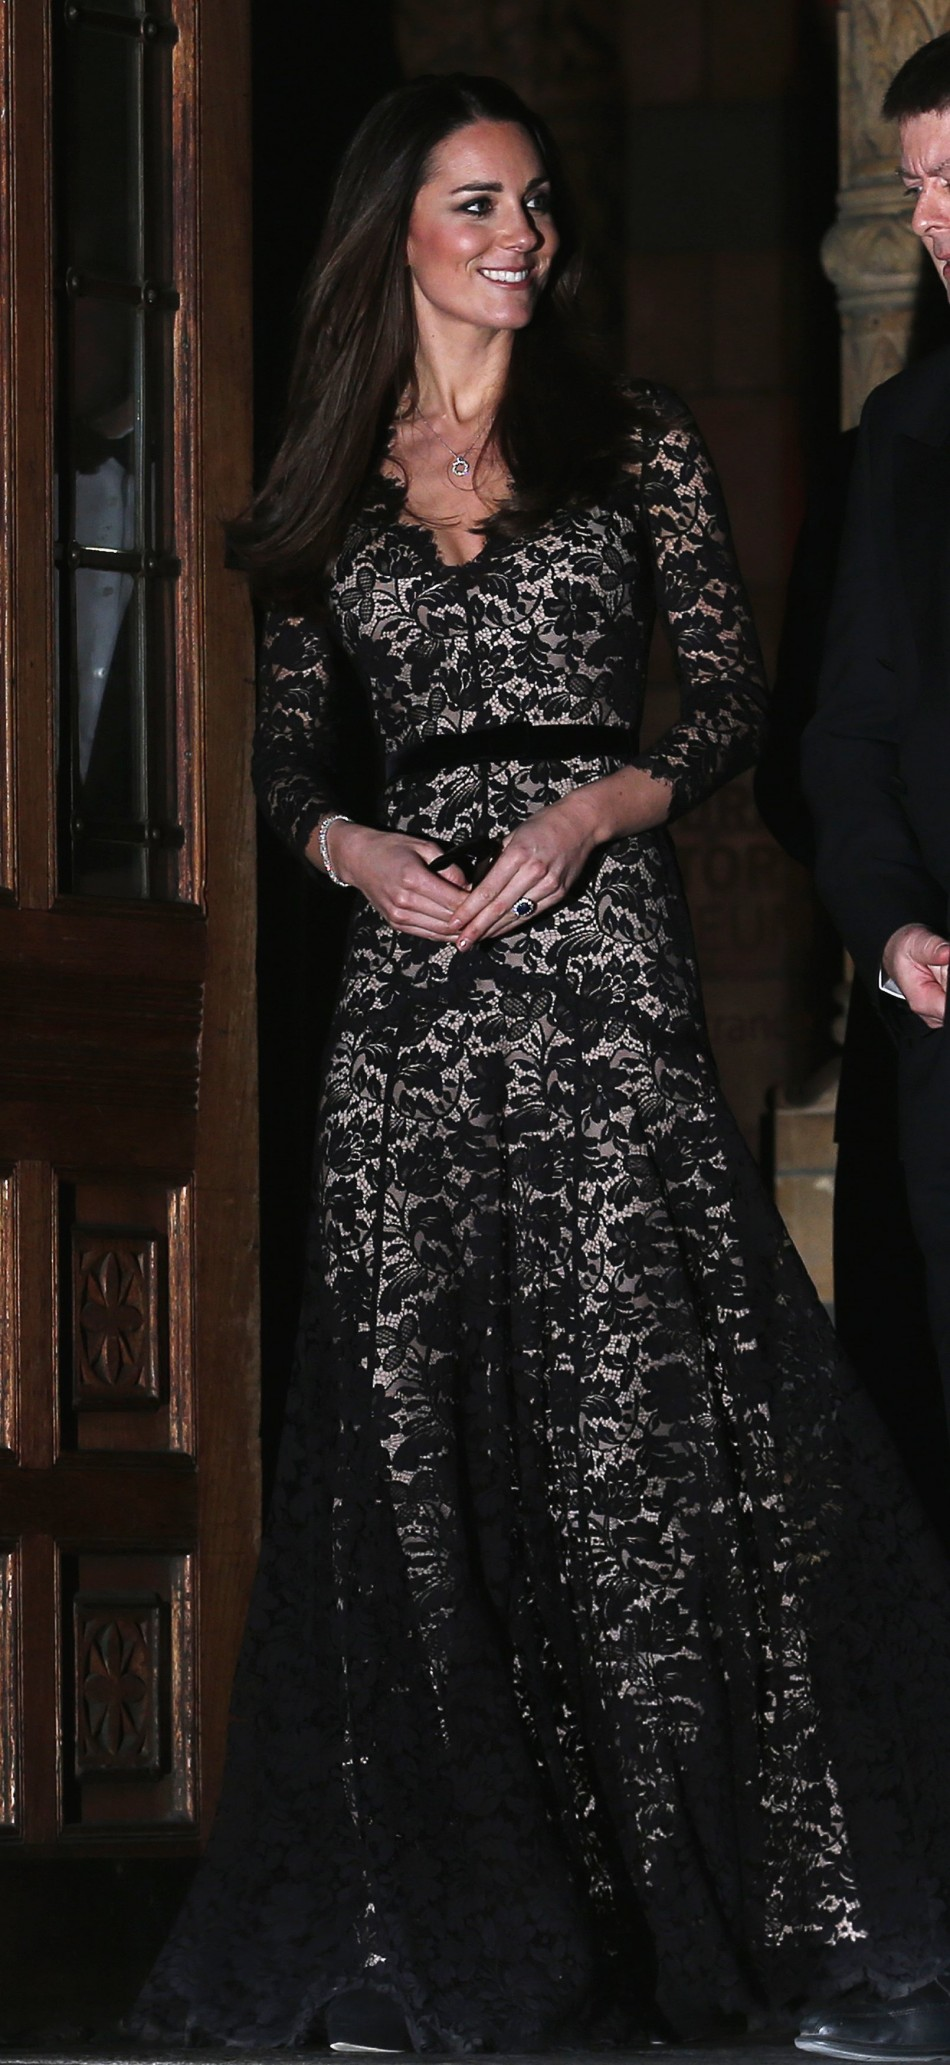 Kate Middletons Revealing Dress Exposes Tiny Baby Bump -5845